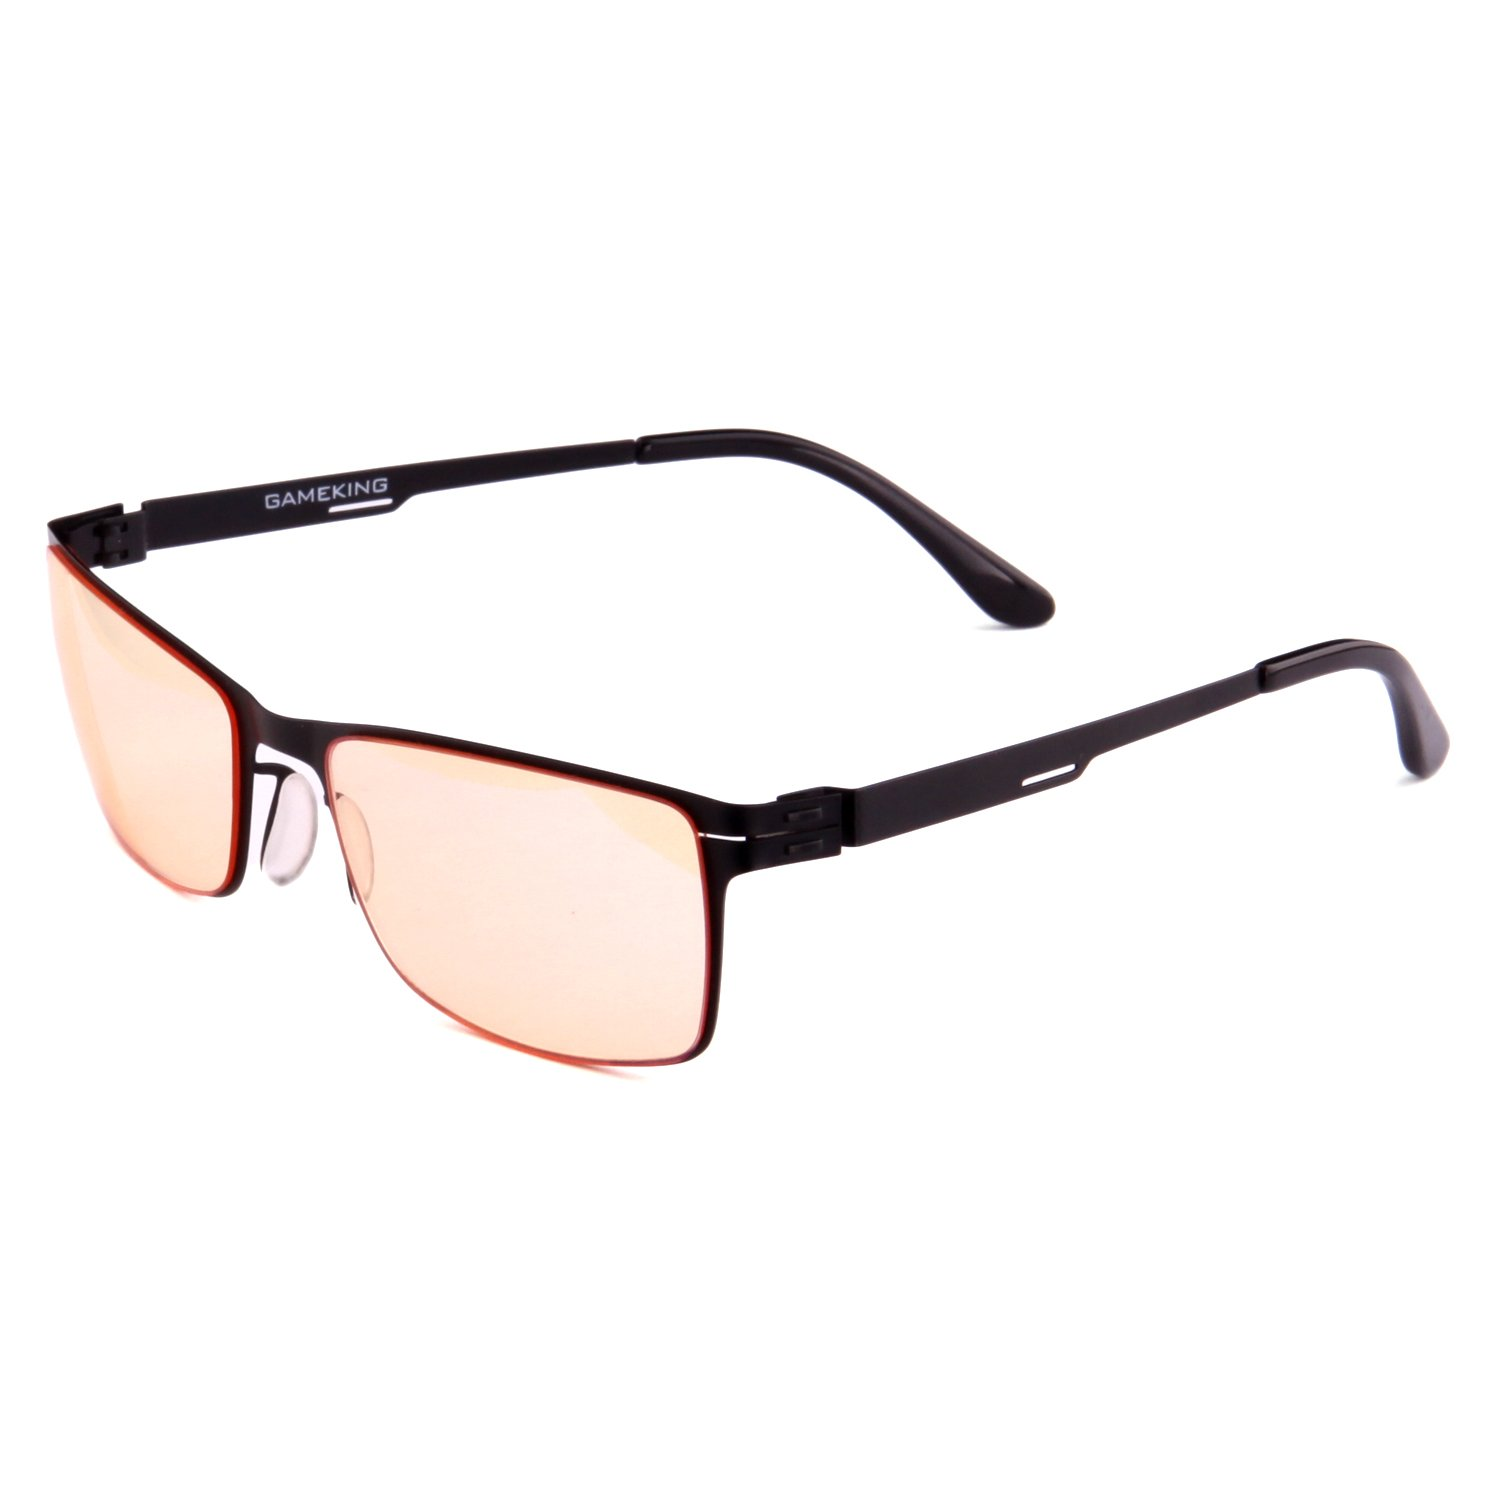 393cde2b7b GAMEKING Ultra SJ030 Premium Anti Blue Light Anti Glare Anti UV Computer  Glasses Gaming Glasses with Tan Tint Lens for Eye Strain Fatigue Relief  Better ...